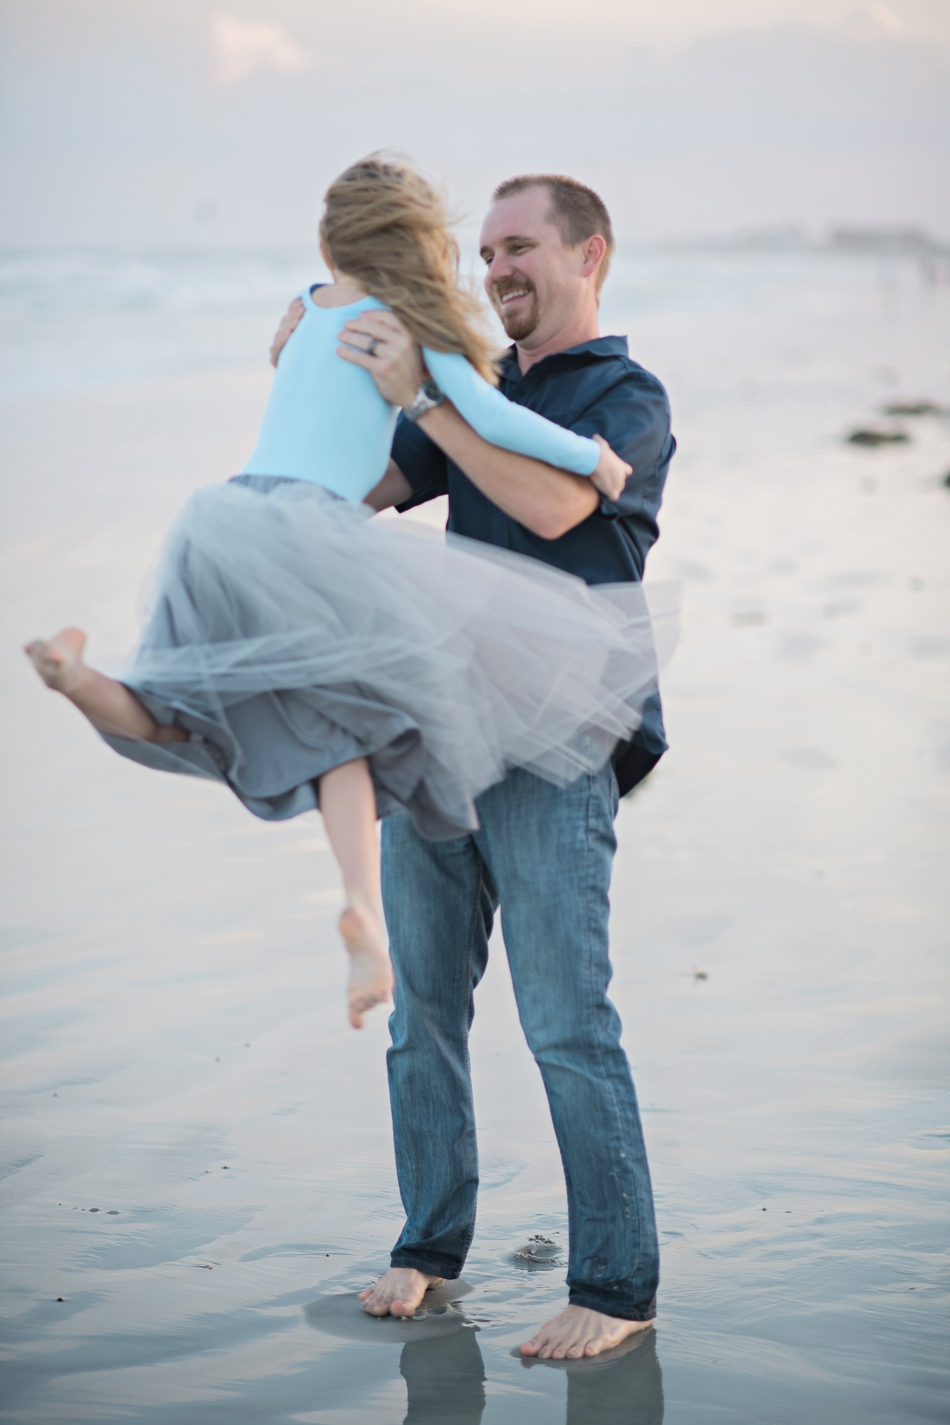 Dad and daughter on the beach